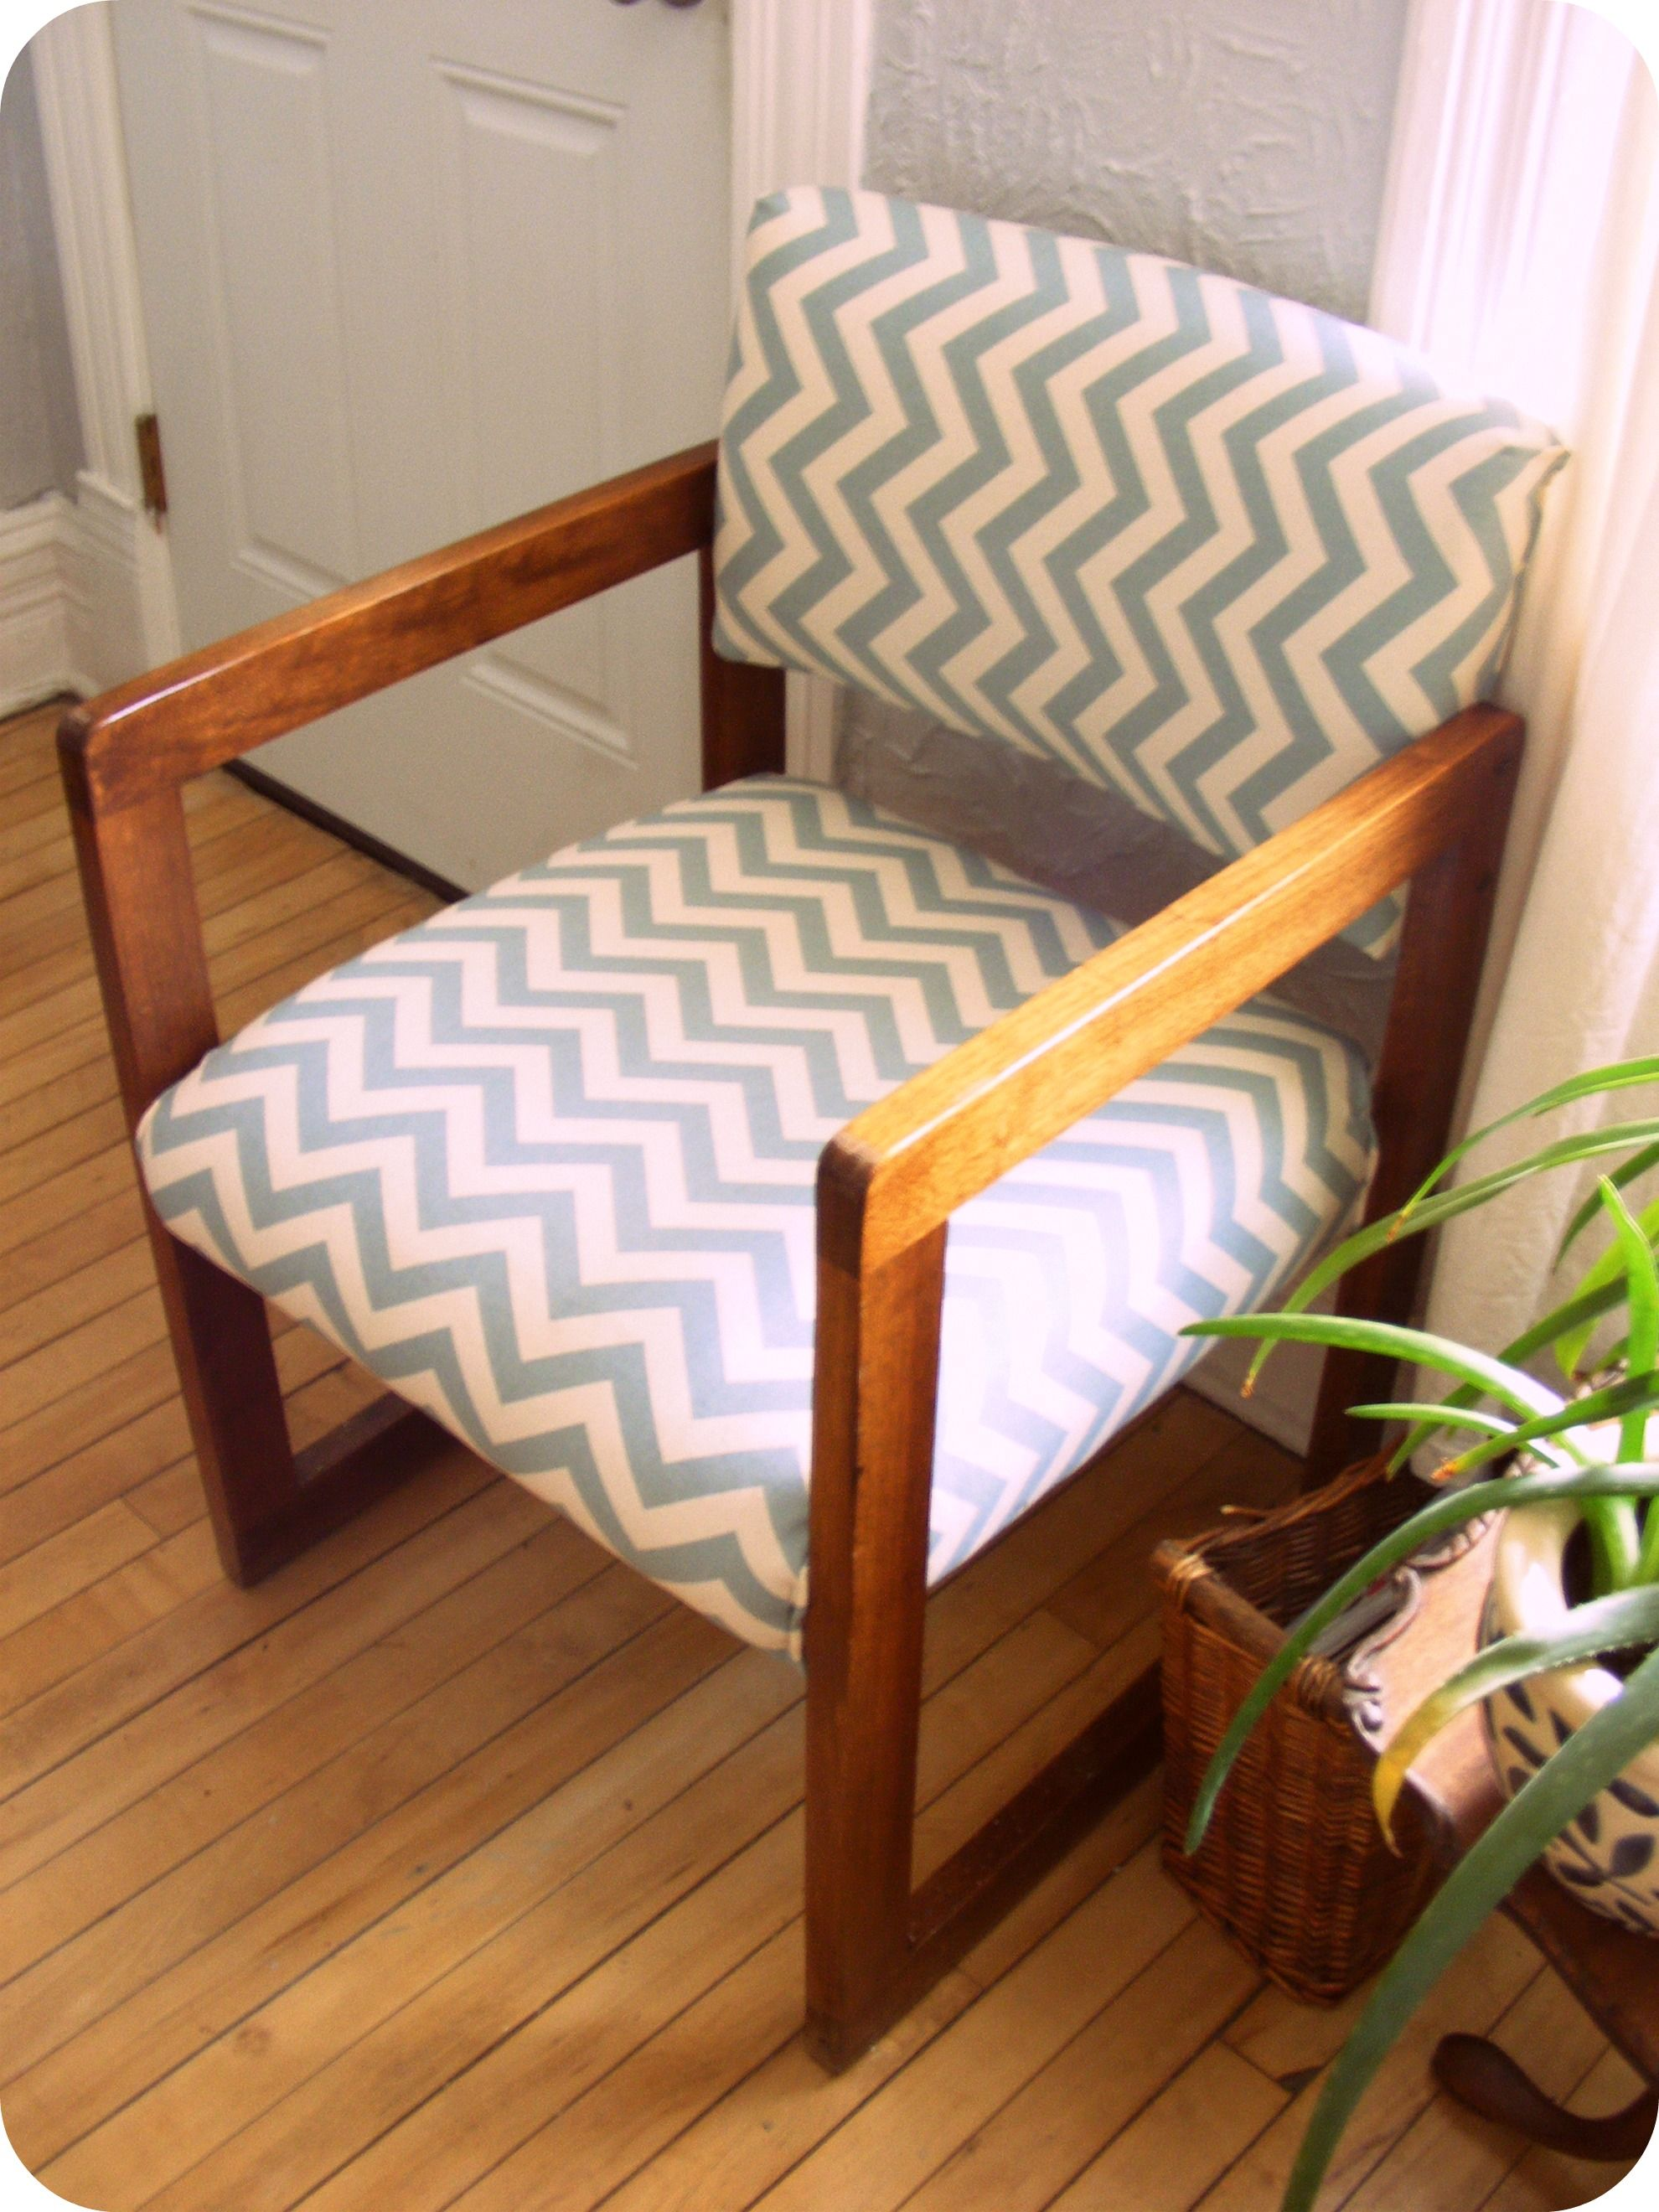 Diy reupholster dining chair - Compulsive Craft Chair Re Do Doodoobeedoop